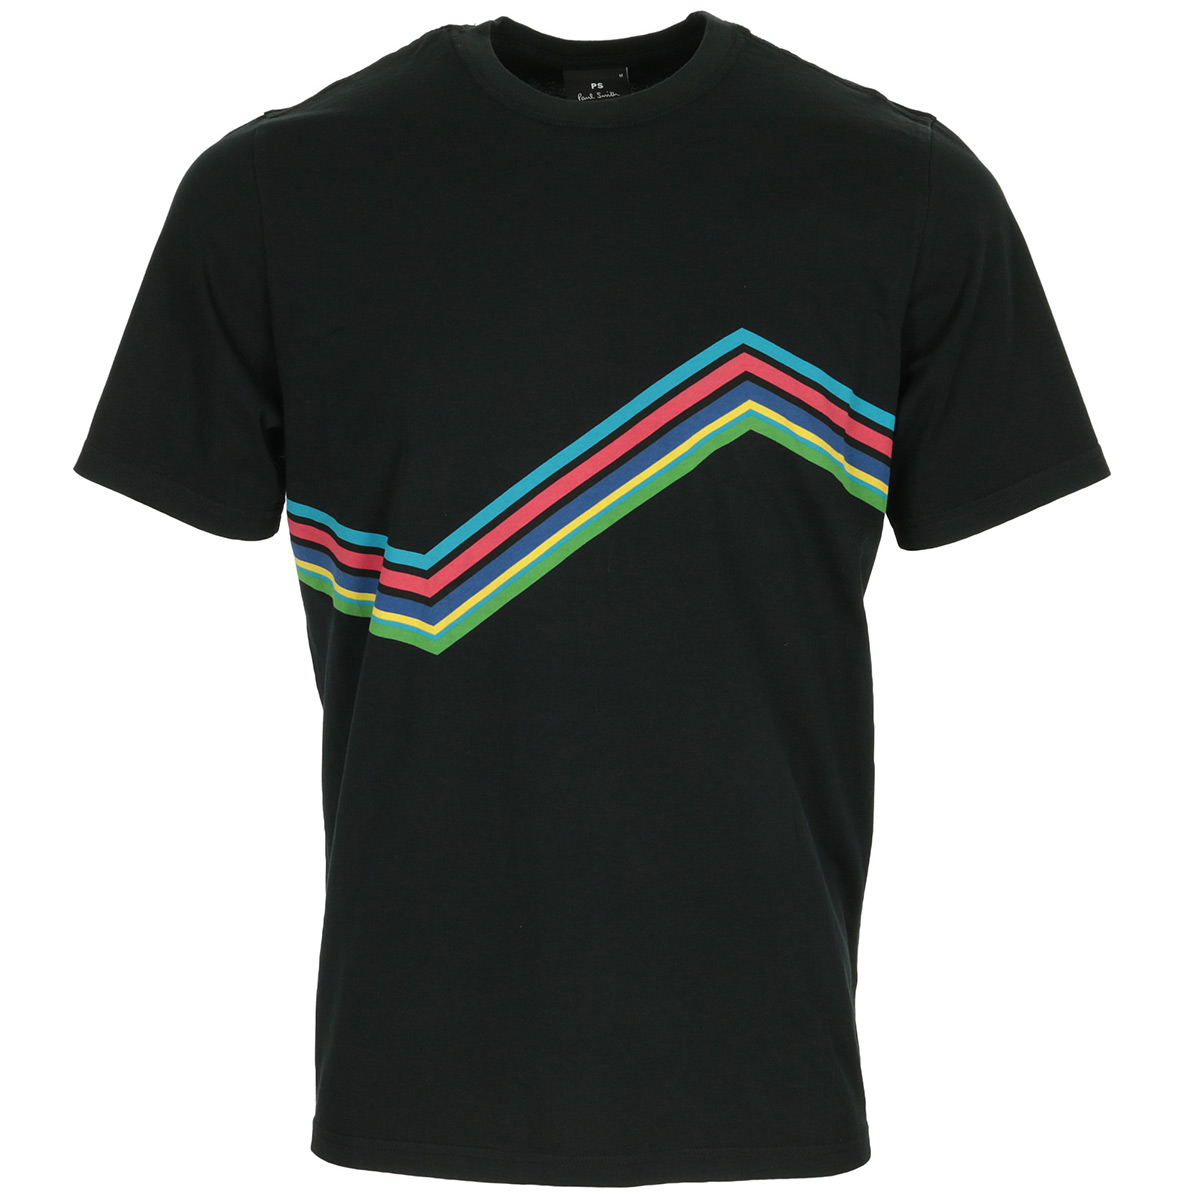 PS by Paul Smith Tee Shirt Regular Fit Ziggy